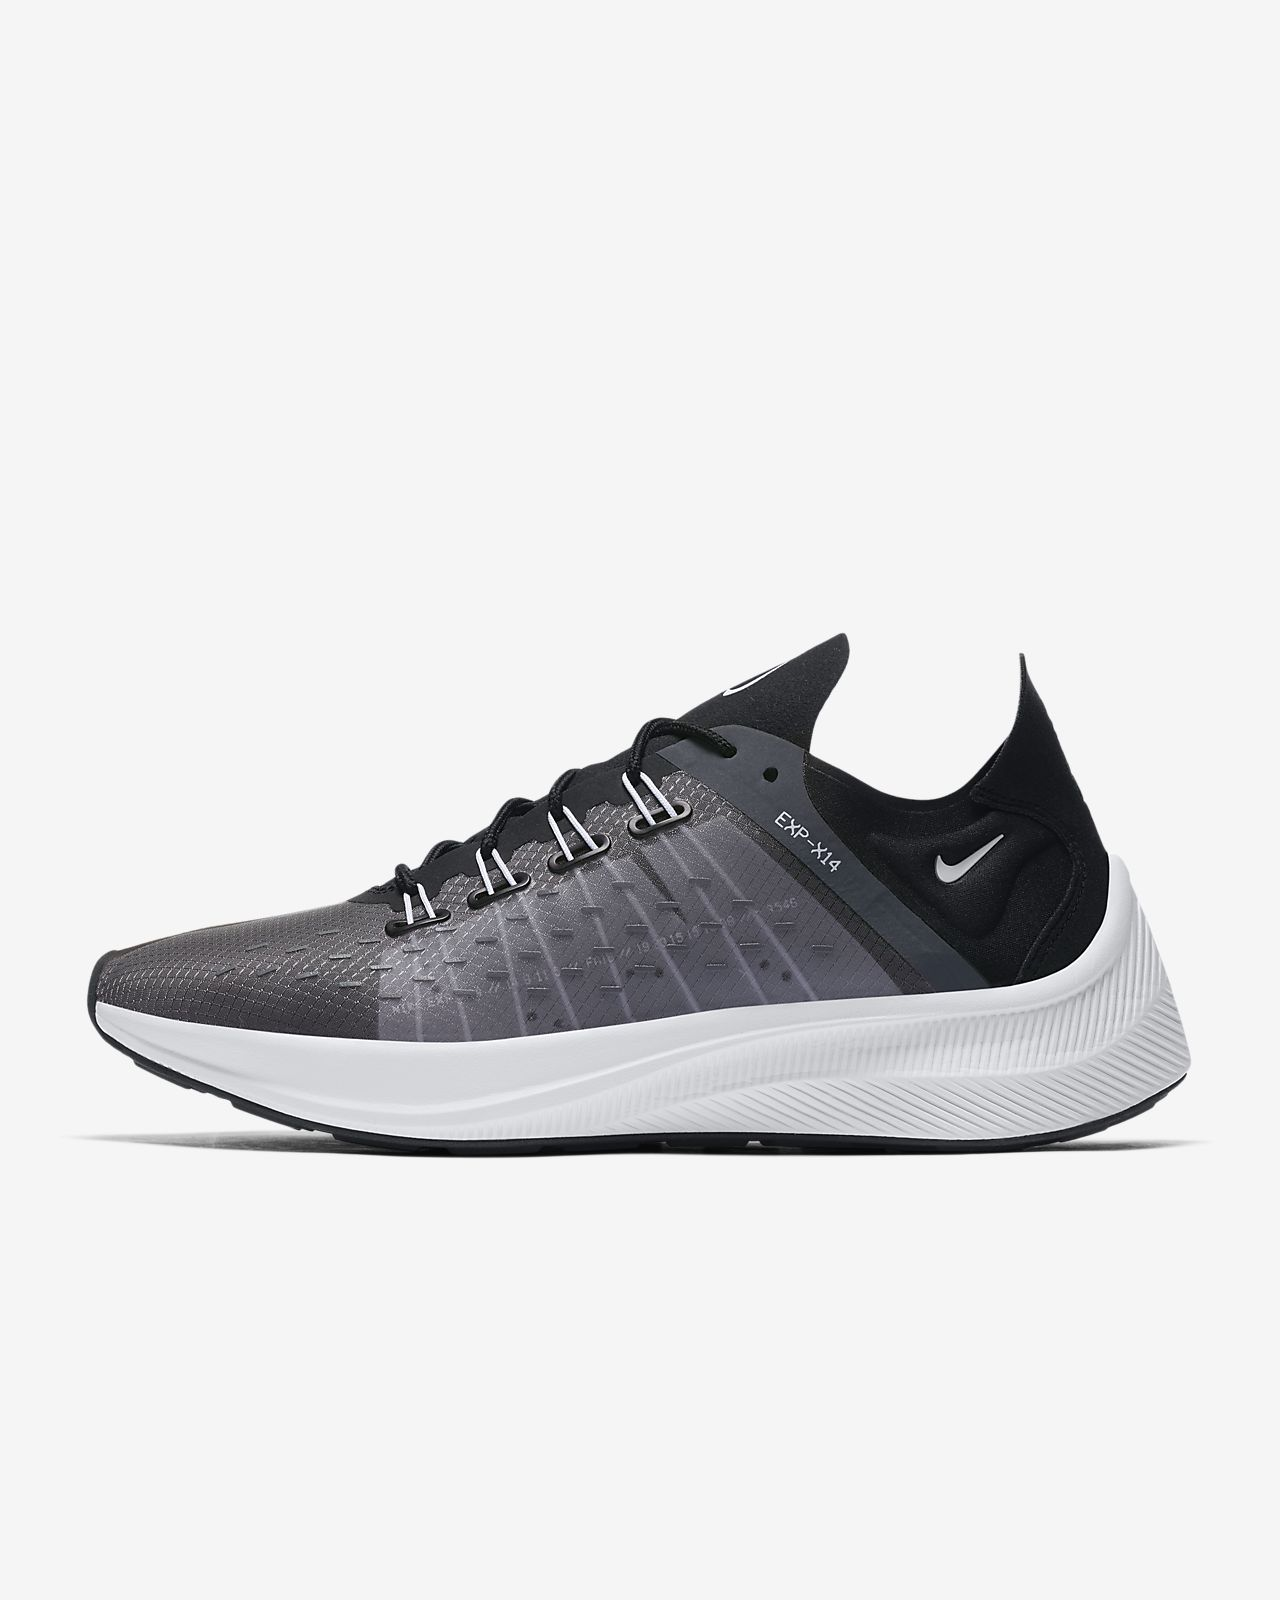 best website 77ec7 be022 ... Buty damskie Nike EXP-X14